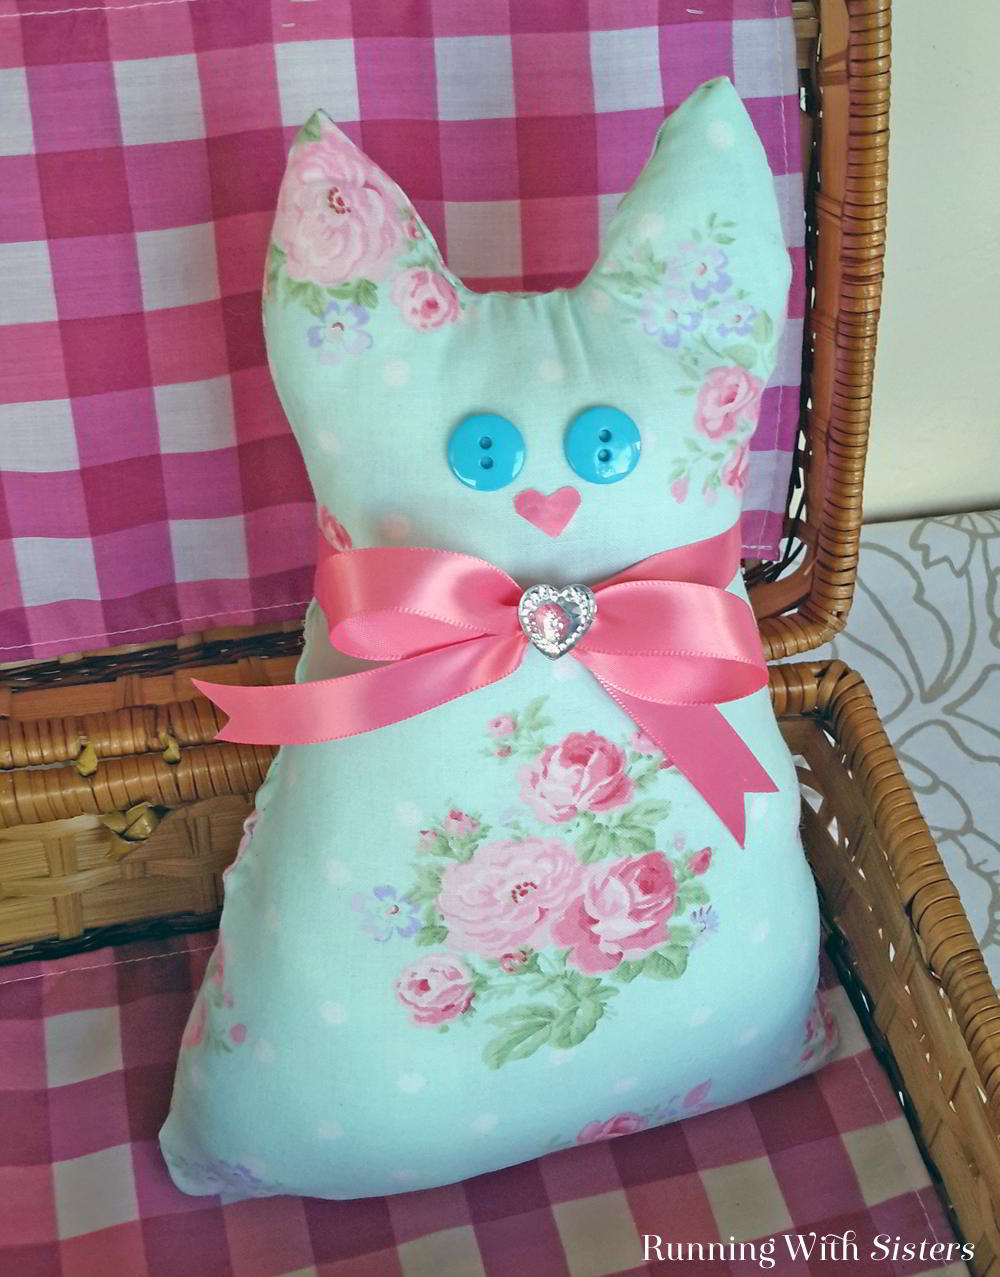 Here's a cute no-sew craft: A Calico Cat Pillow or Doorstop! We  discovered the glue that works best. Plus we have a tip to turn the pillow into a doorstop.